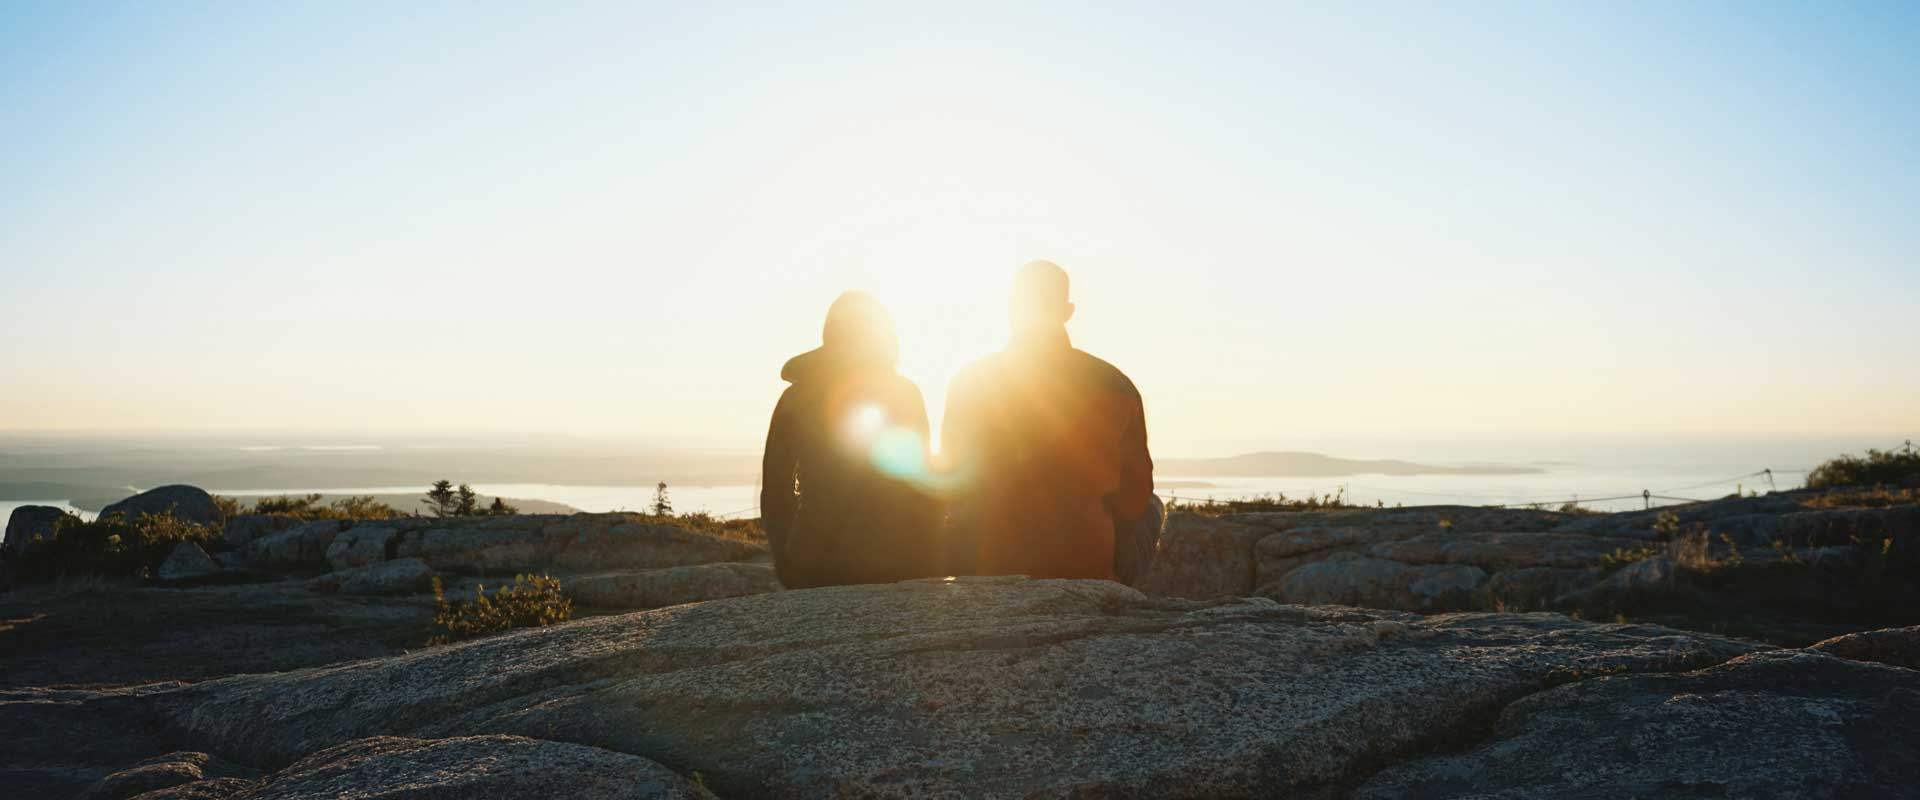 A couple sit side-by-side while enjoying a scenic landscape near the coast